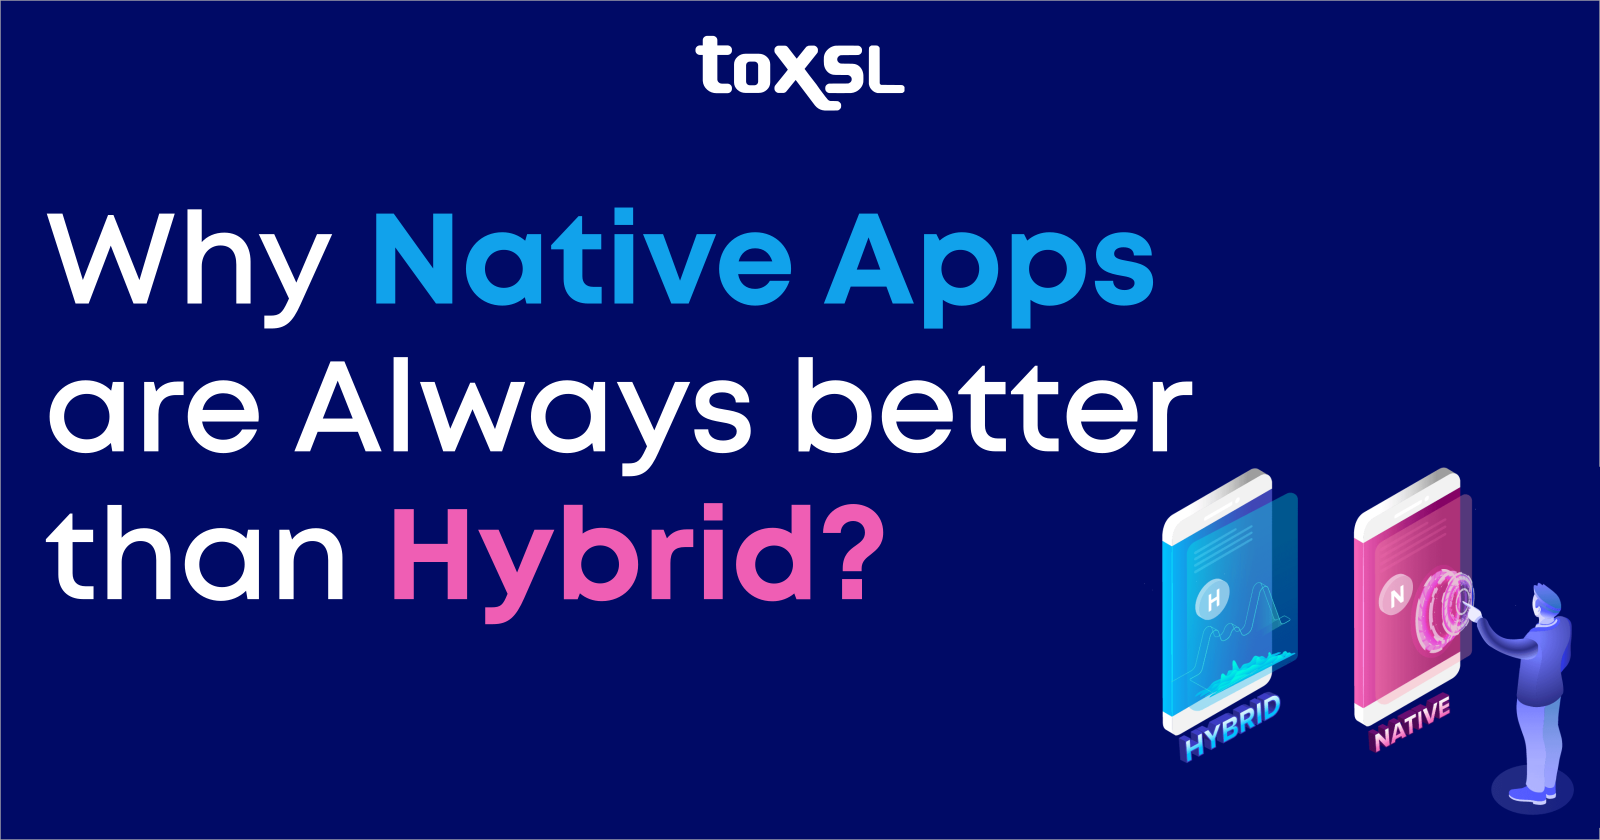 Why Native Apps are Always better than Hybrid?